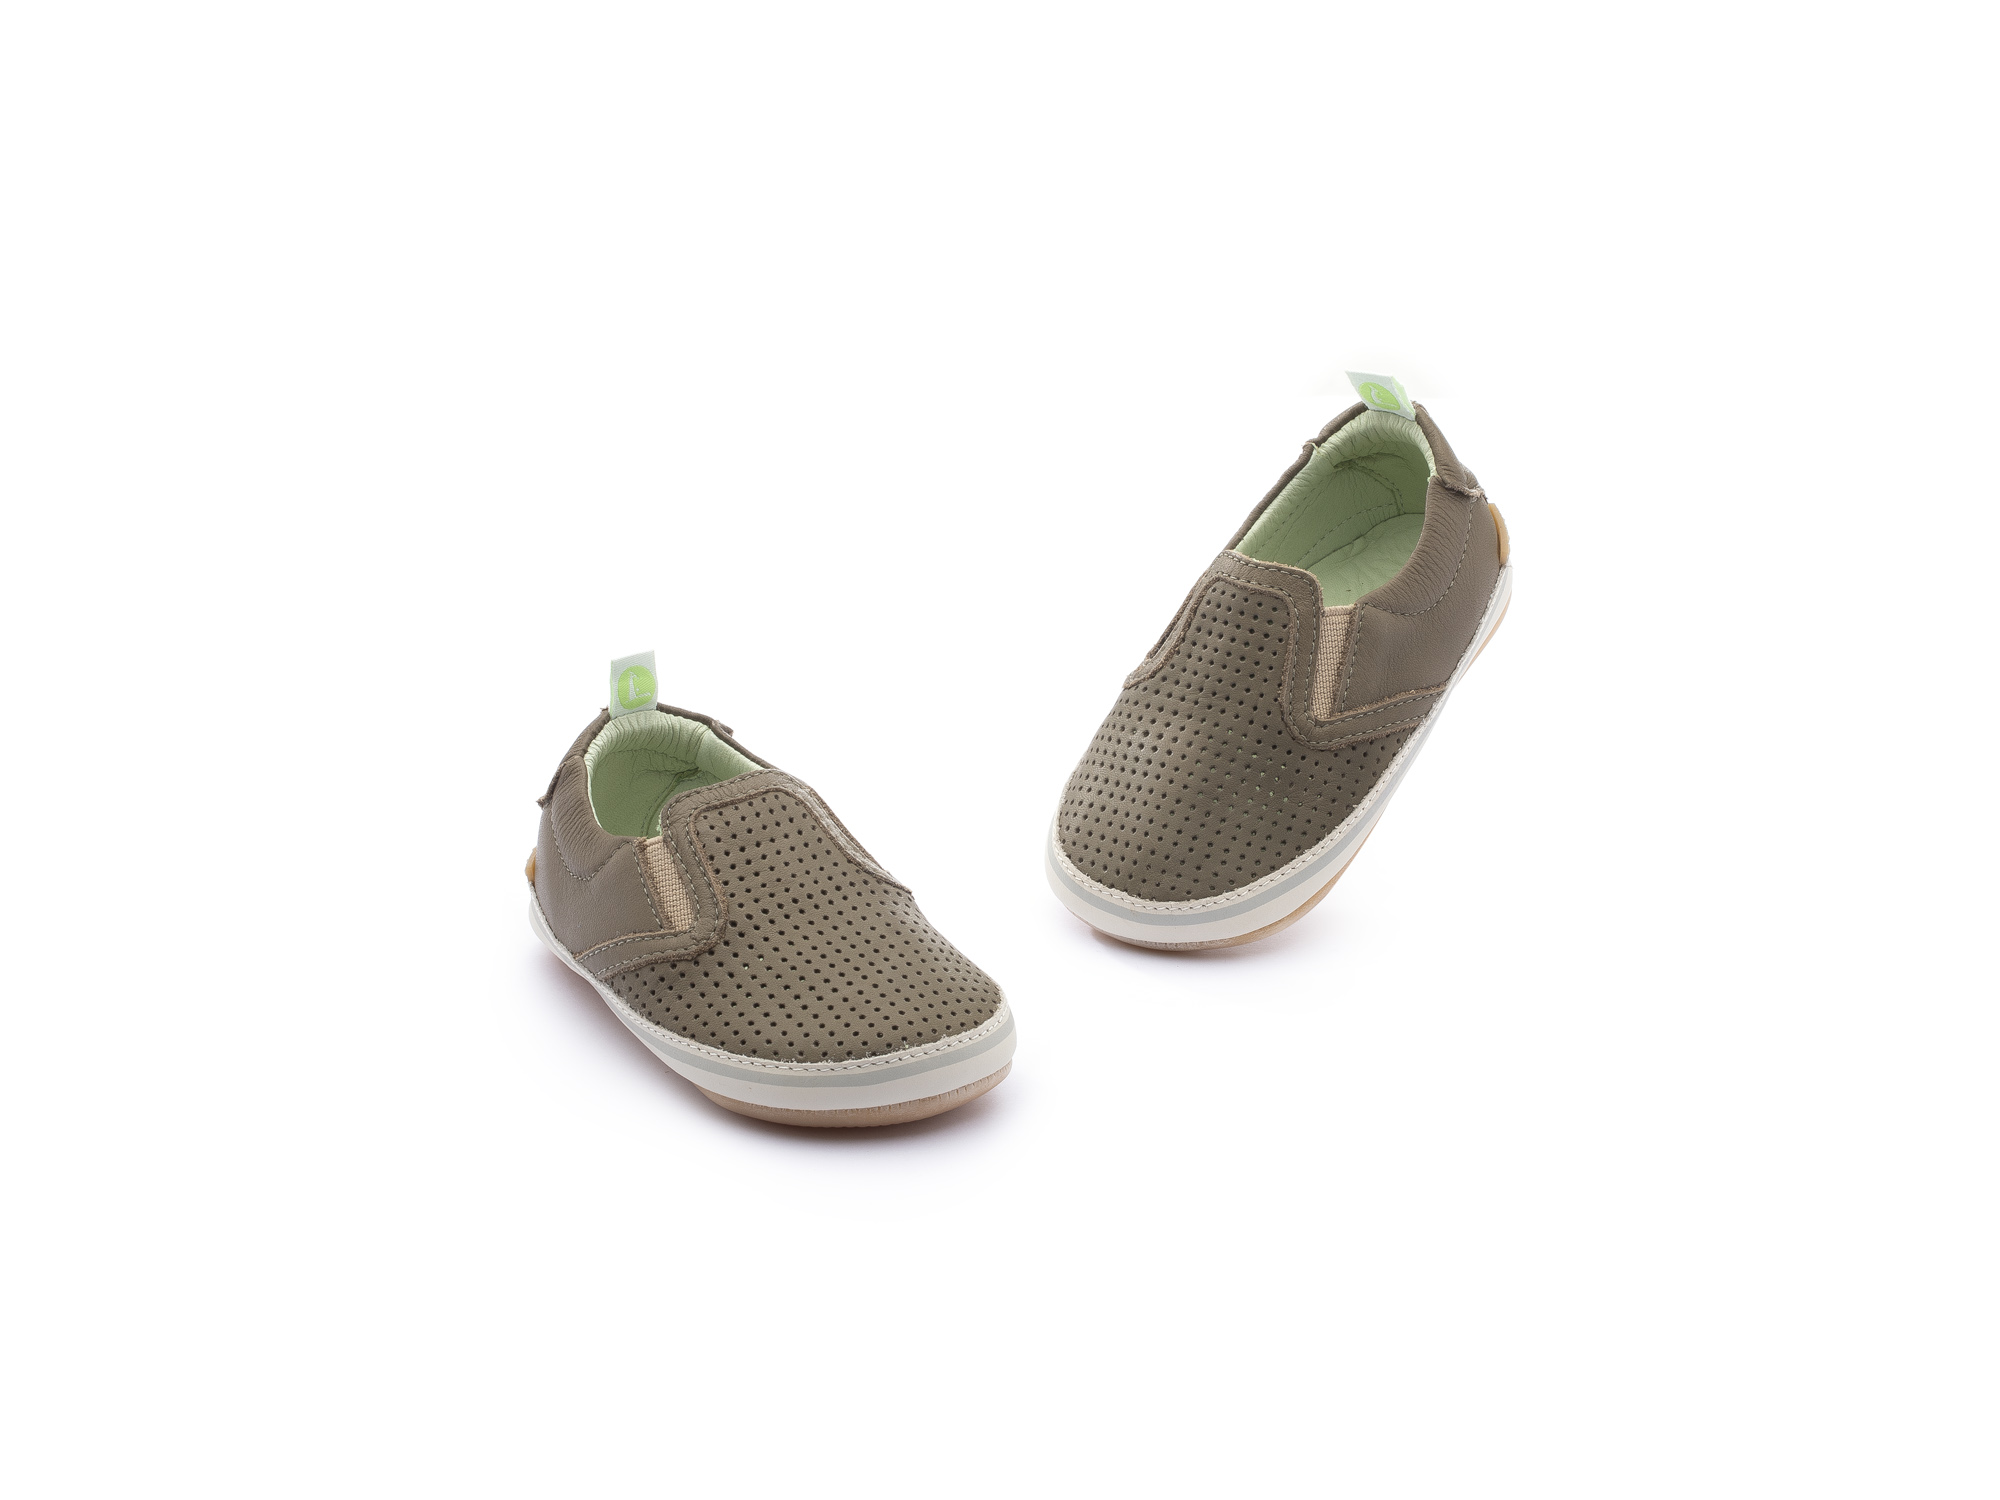 Sneaker Casual Woody Mineral Green Holes/ Mineral Green Baby 0 à 2 anos - 3